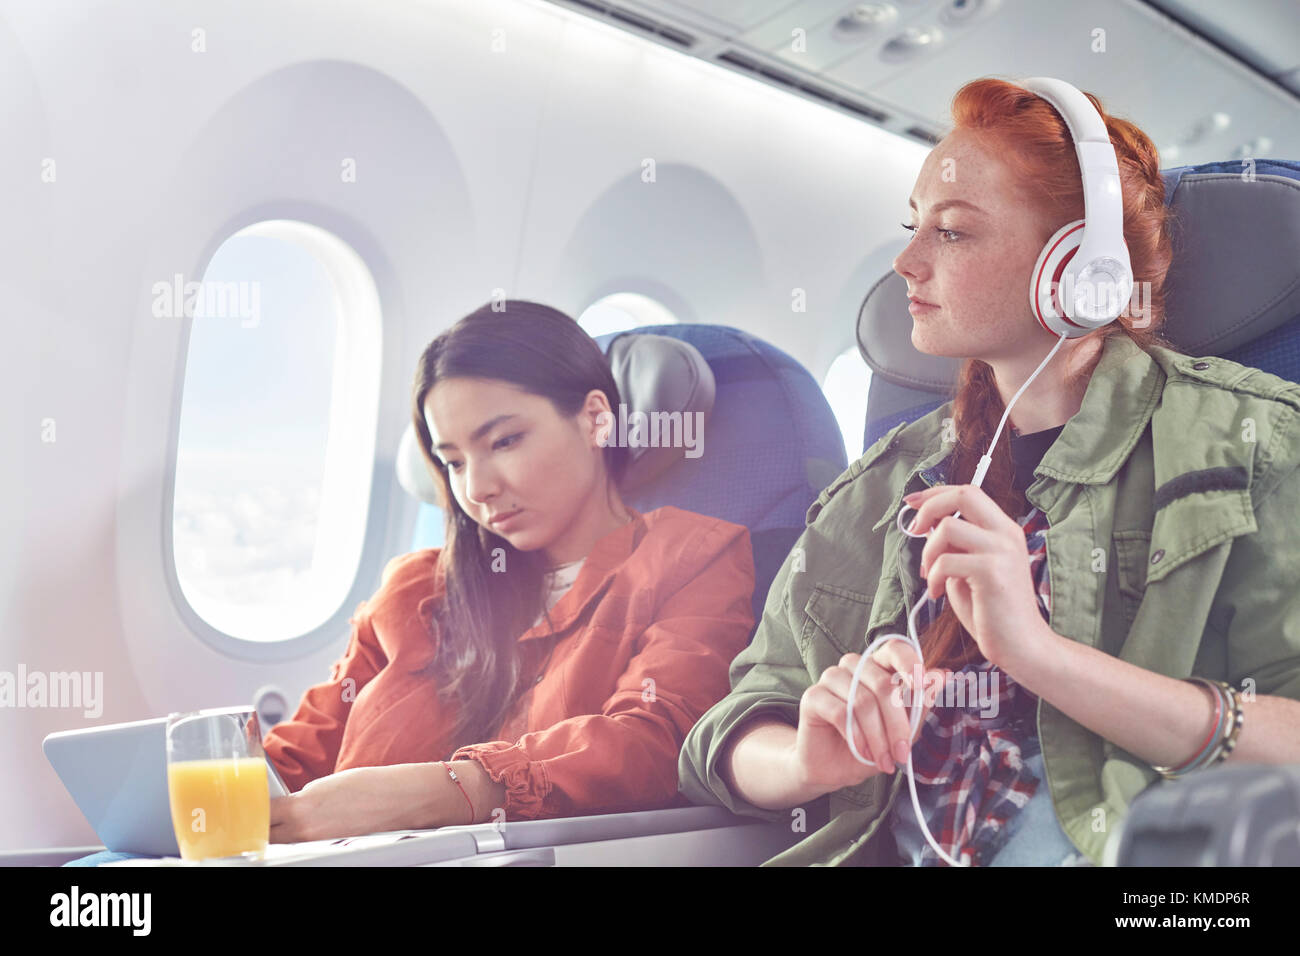 Young women friends with headphones and digital tablet on airplane - Stock Image